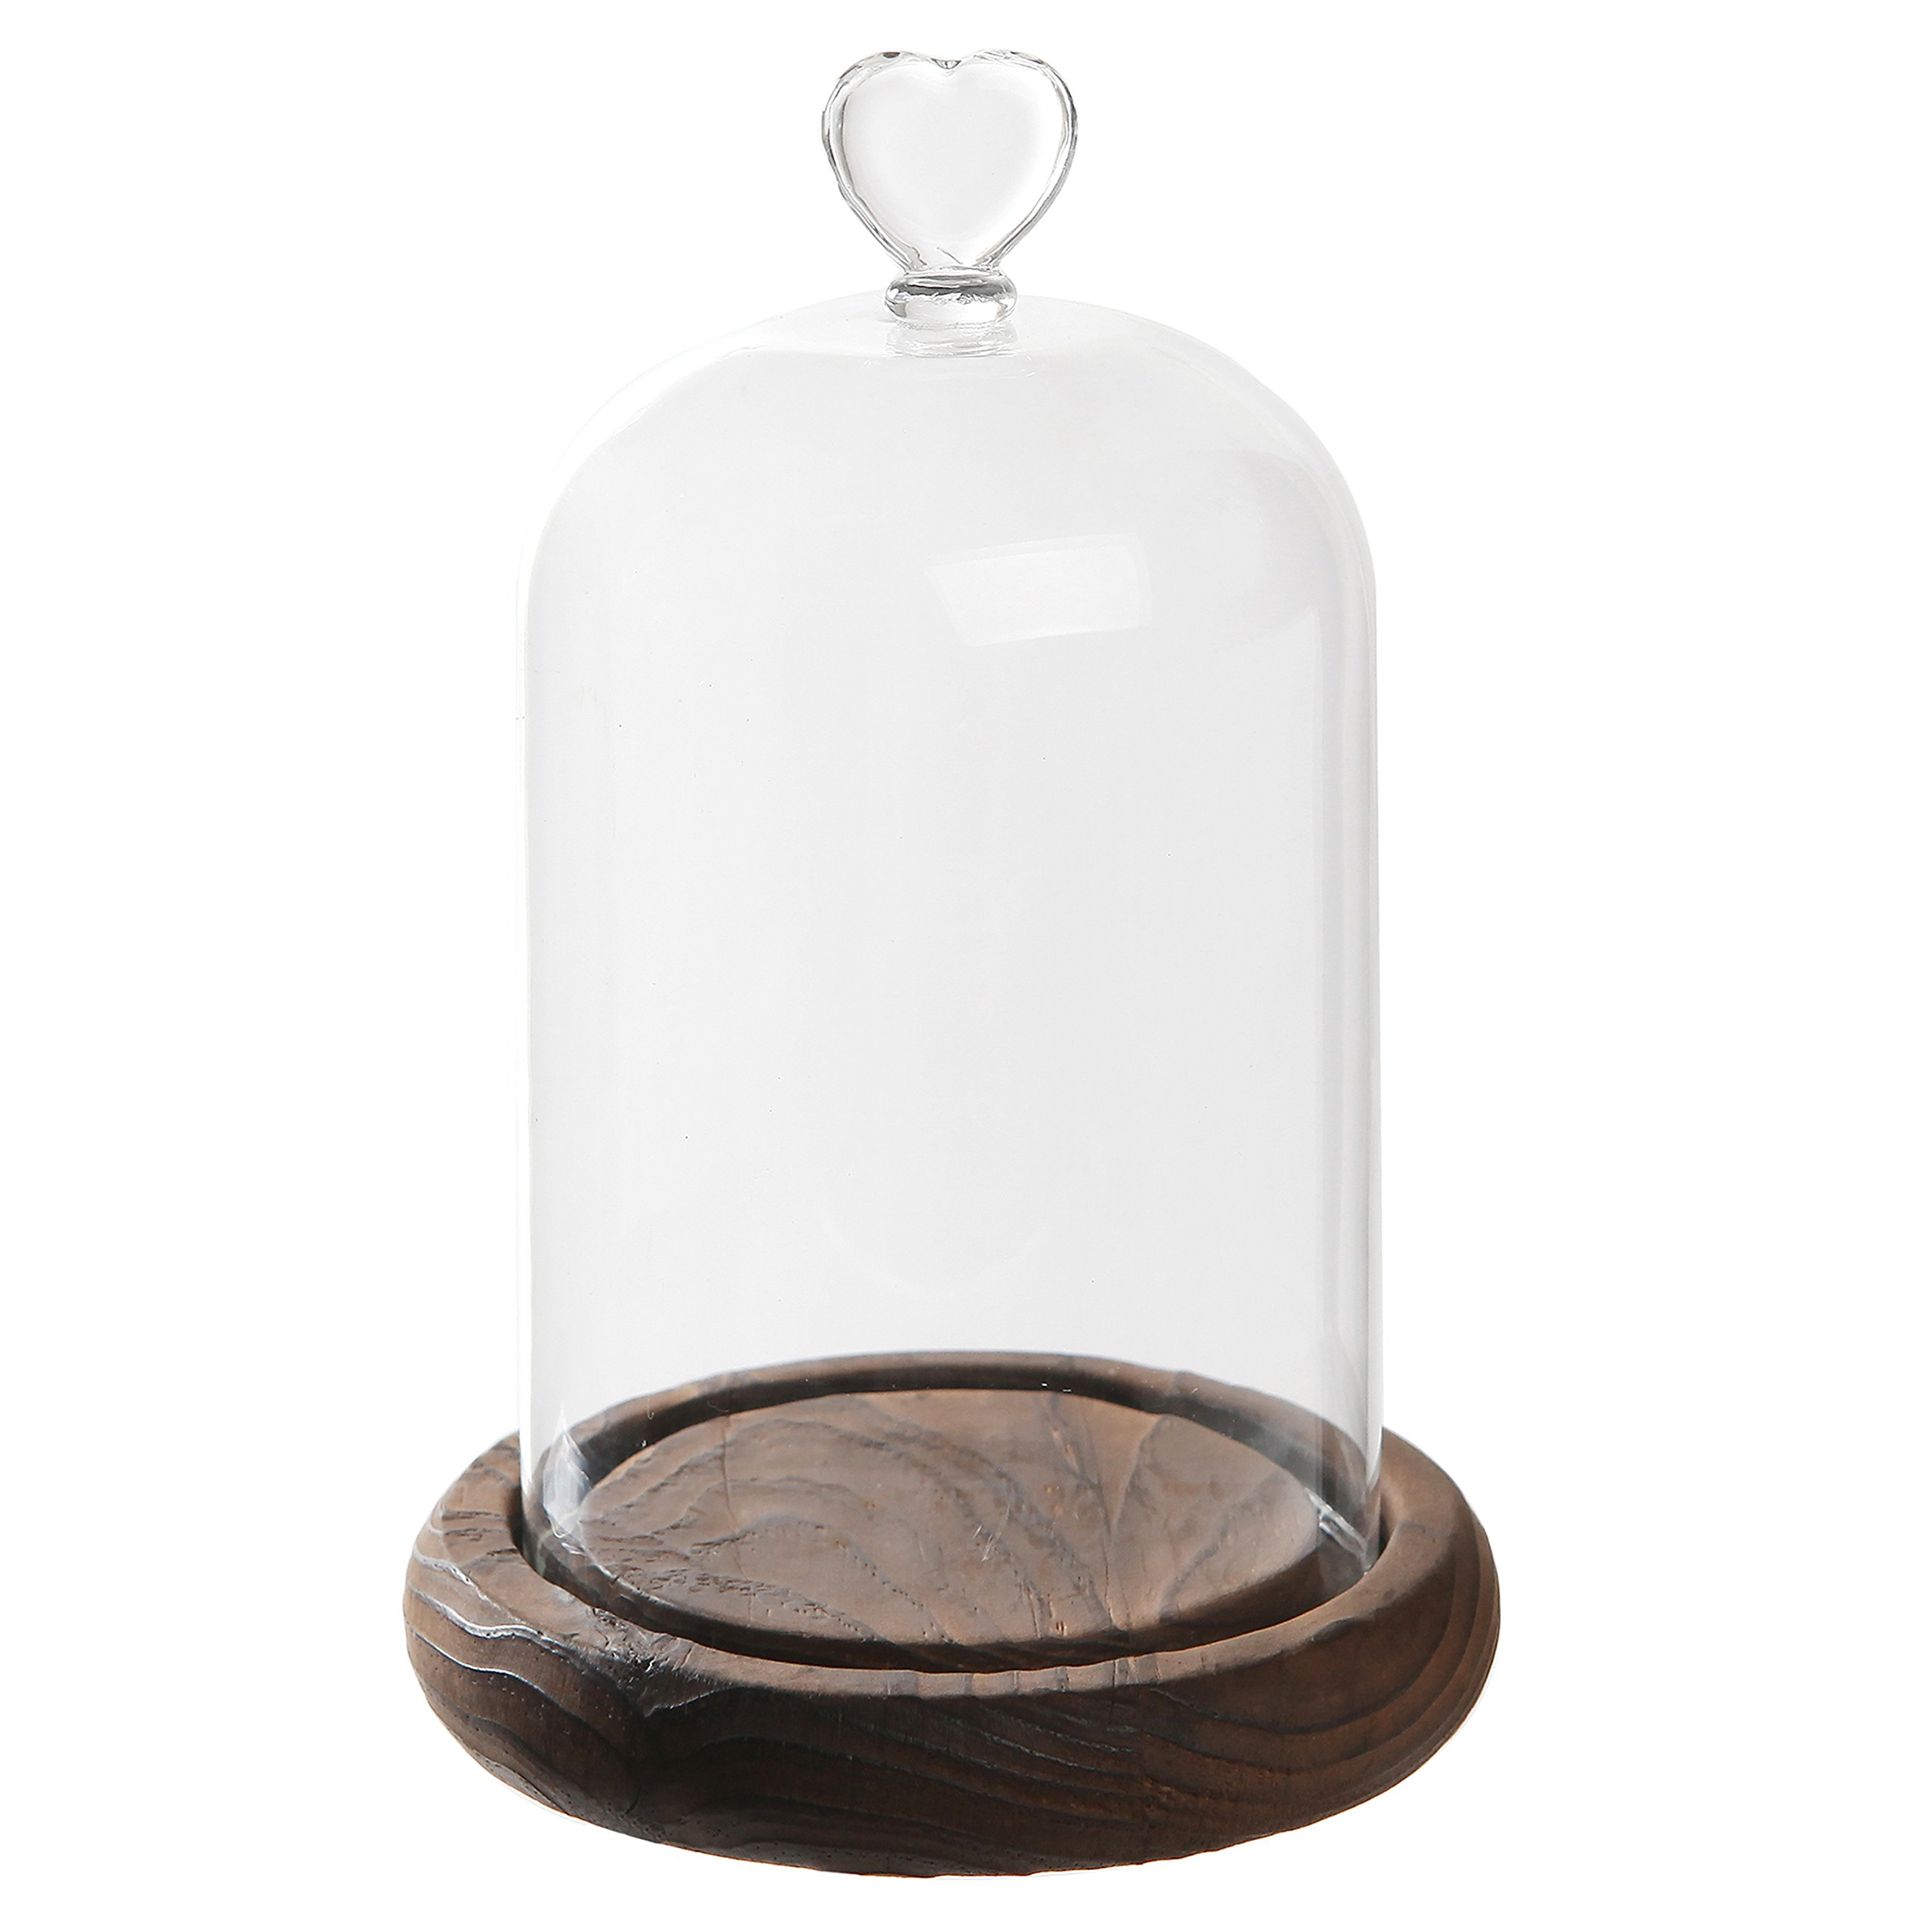 7 inch Mini Clear Glass & Wood Cloche Bell Jar Centerpiece/Tabletop Display Case w/Heart Handle by MyGift